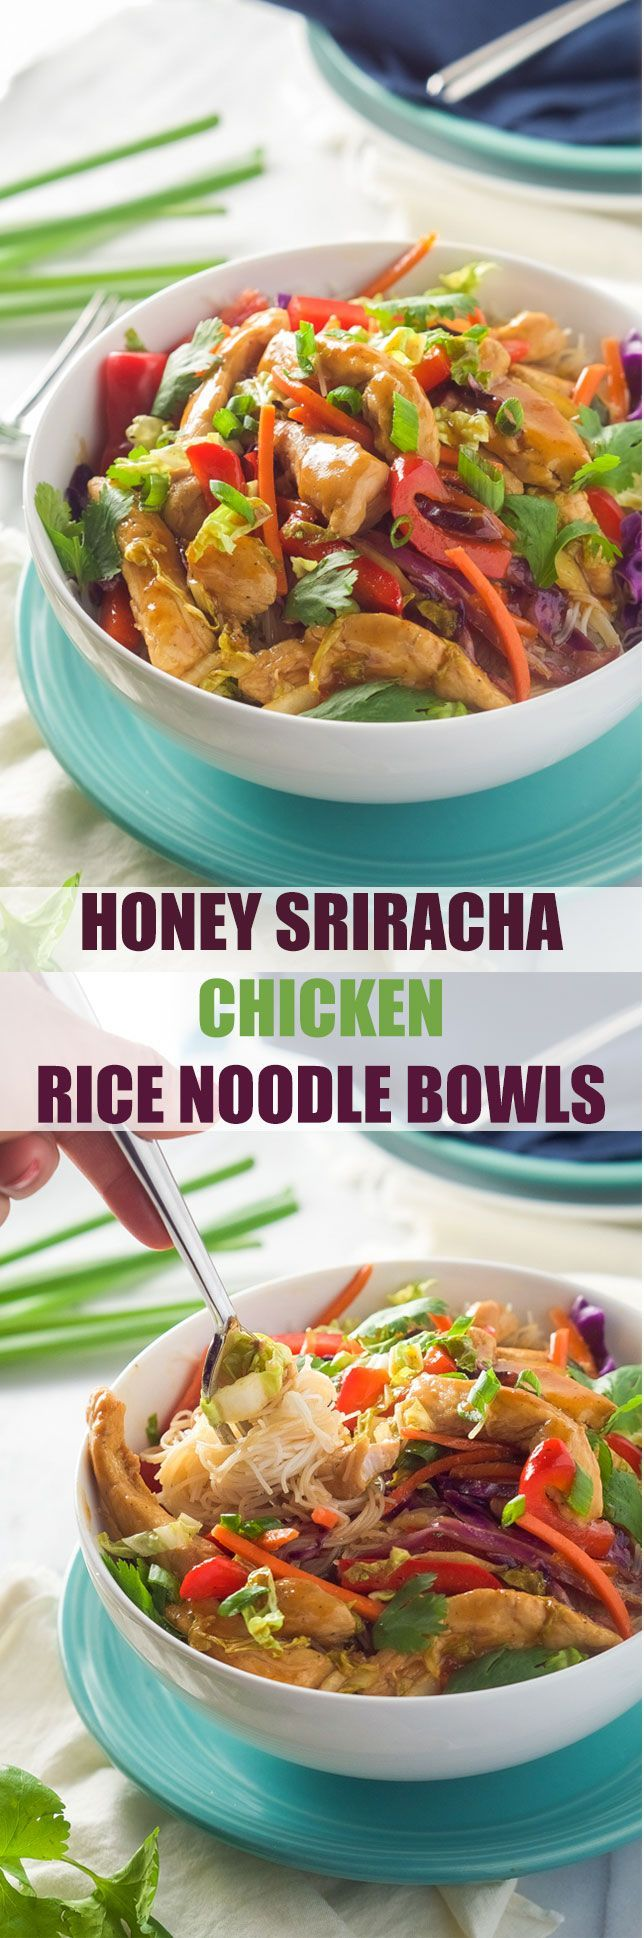 Best 25+ Rice Noodle Recipes ideas that you will like on ...